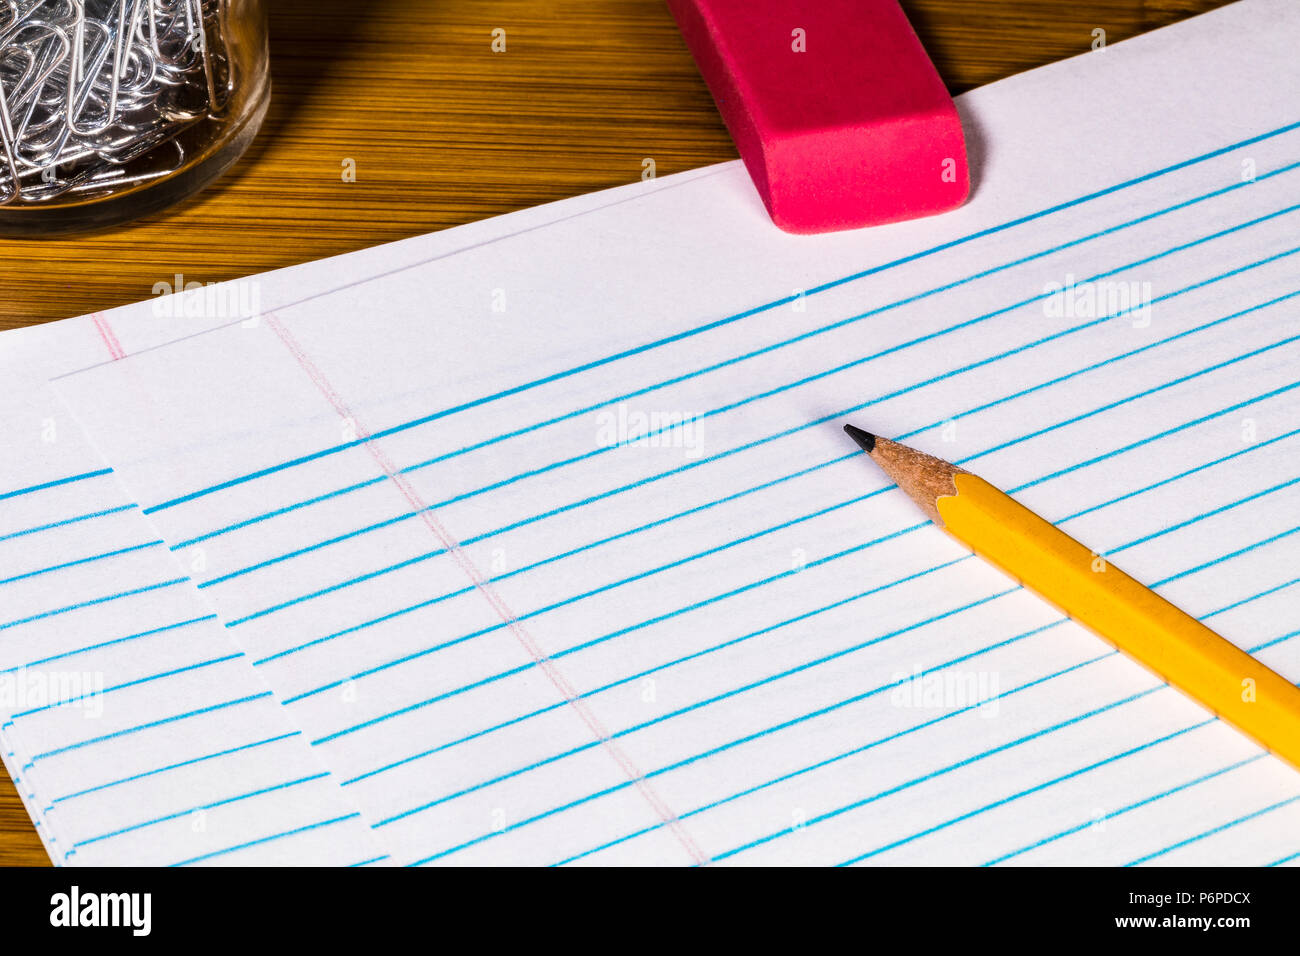 a #2 Pencil, Eraser, paper clips and Filler paper with plenty of room for Copy.  Several sheets of filler paper are featherd below. - Stock Image